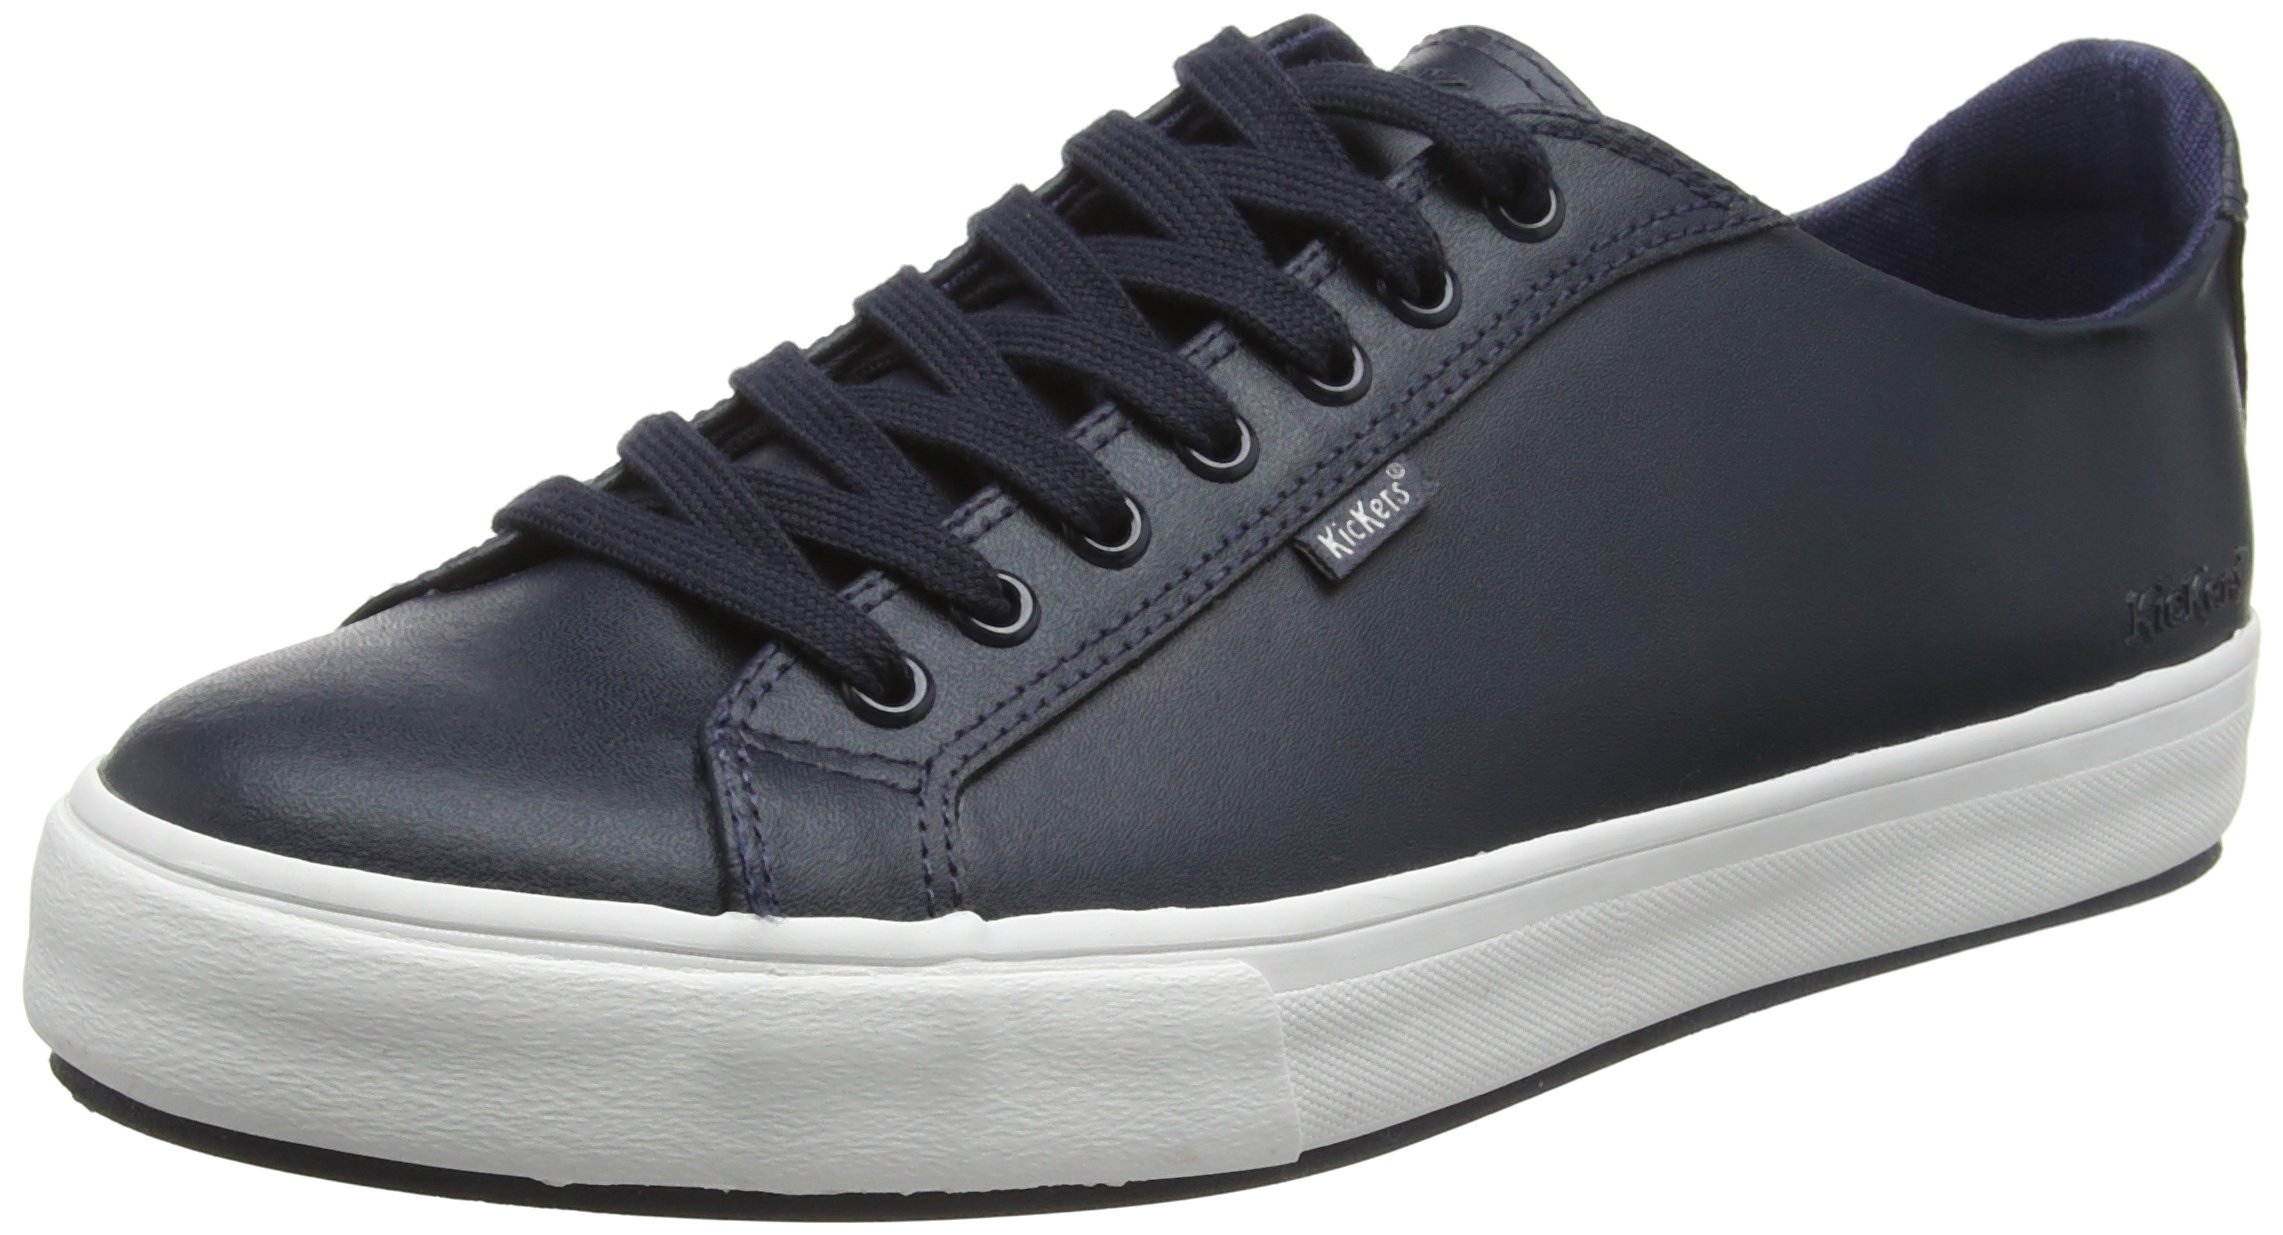 HommeBleubleu41 LacerSneakers Basses LacerSneakers Tovni Kickers Tovni Kickers Yb7yvfmI6g